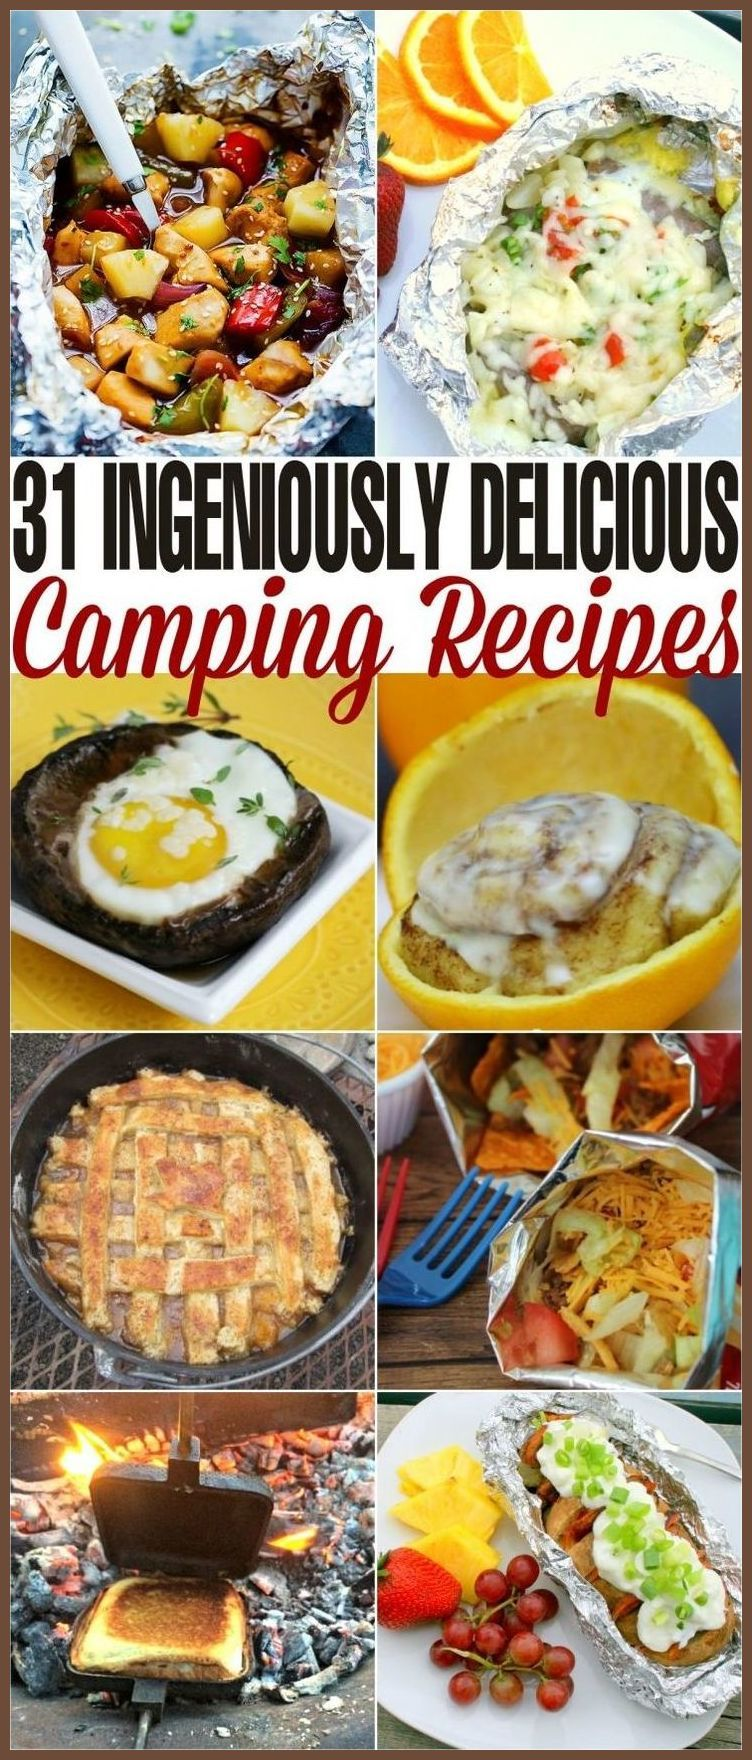 Having Great Camping Food While In The Great Outdoors Camping